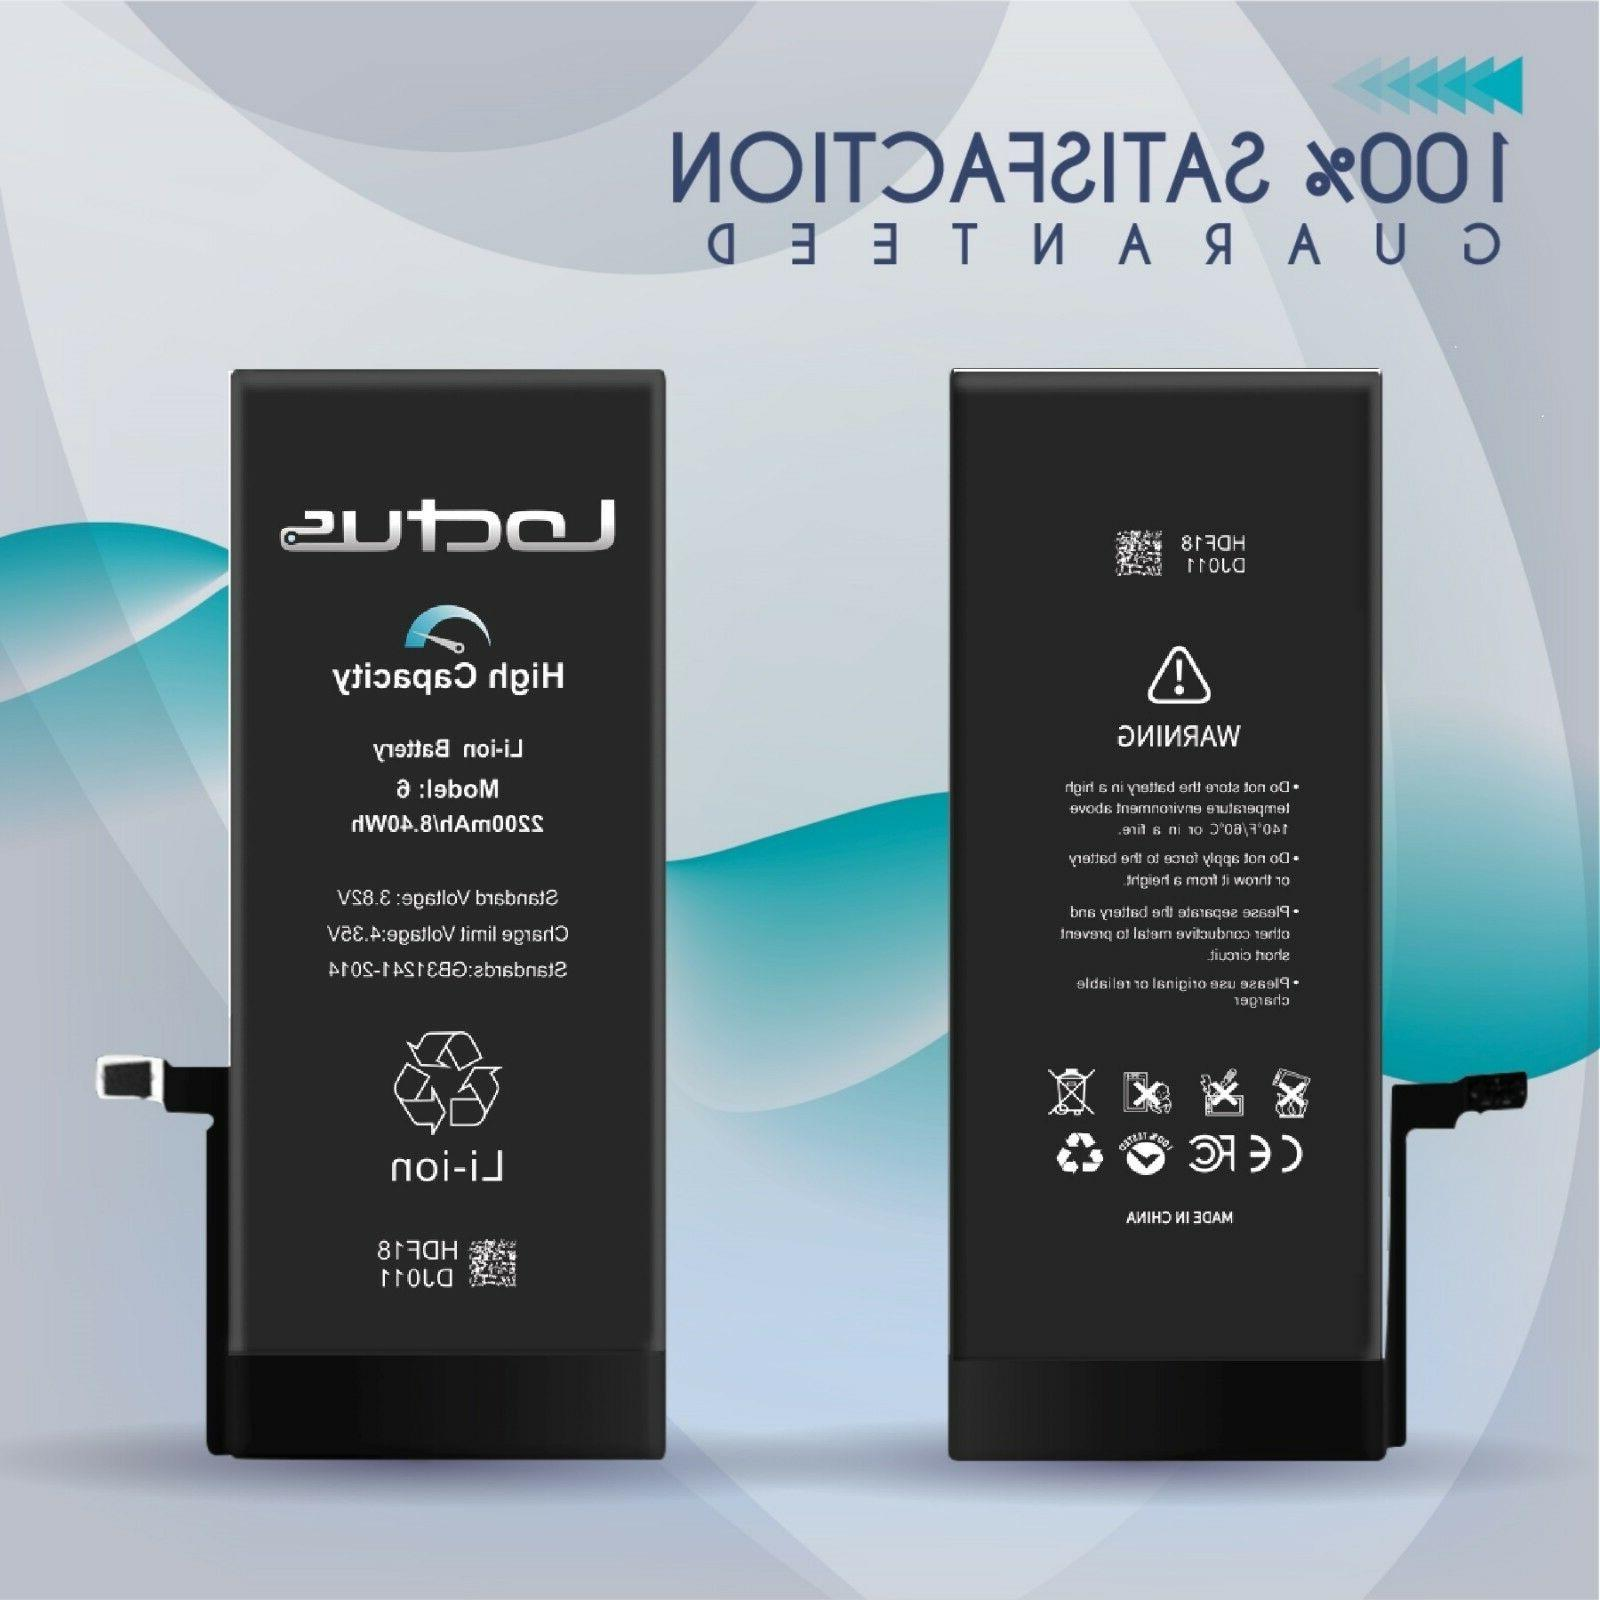 2200mAh HighCapacity Battery iPhone &Adhesive 2 Year